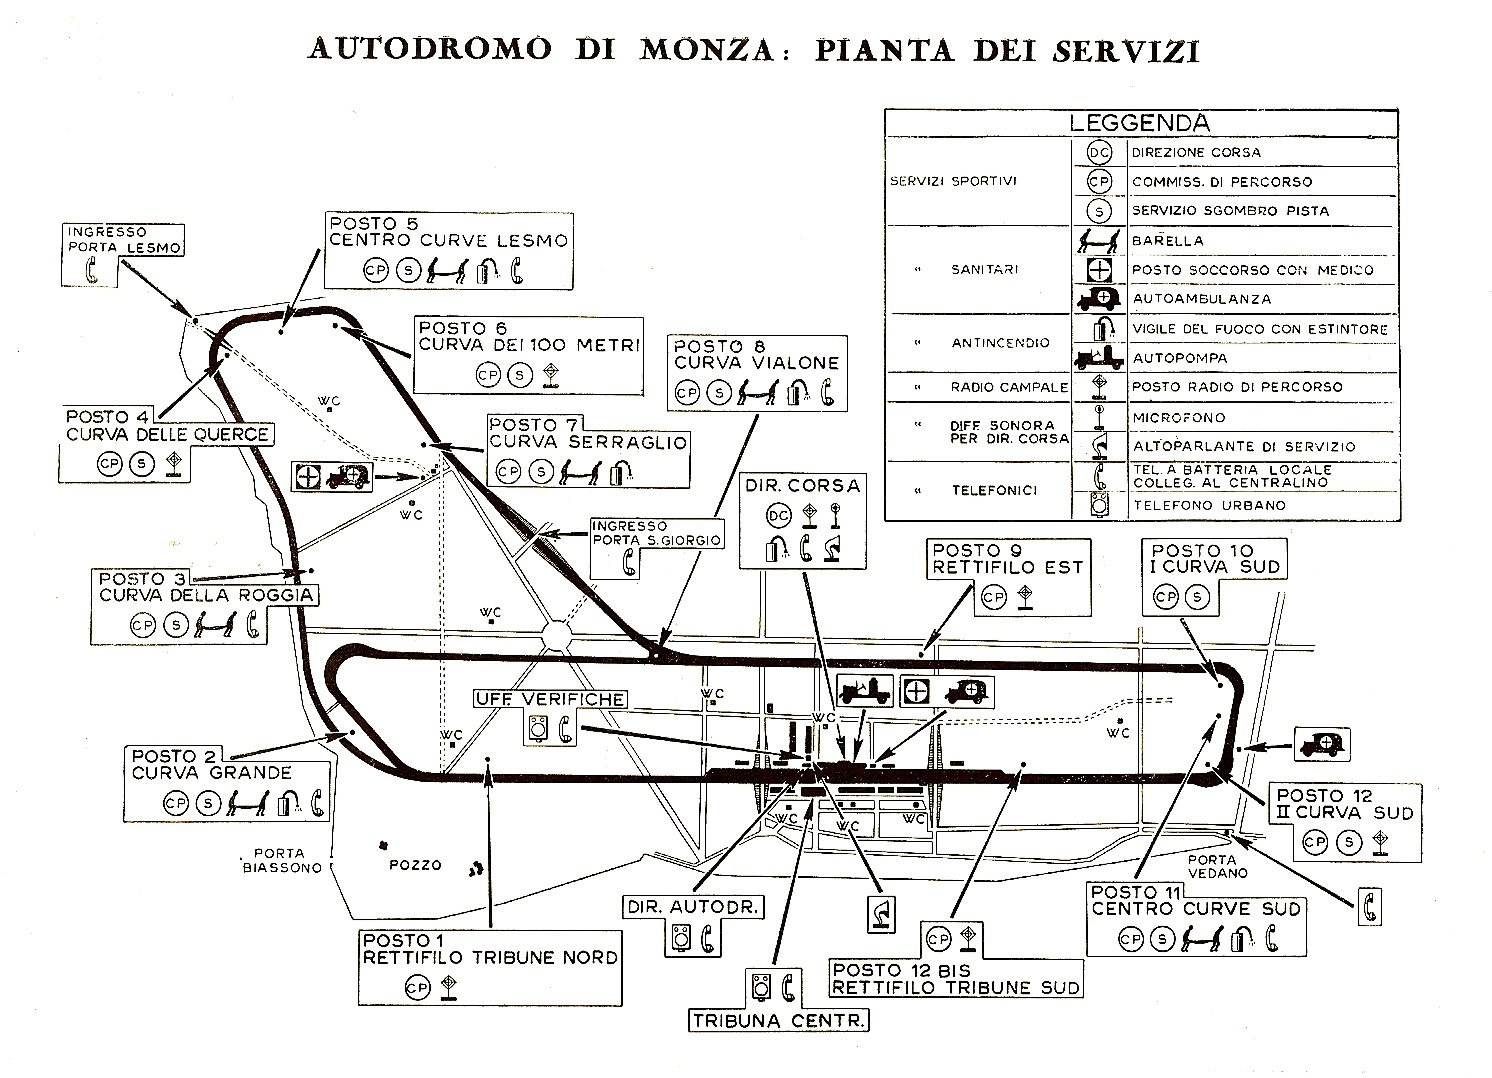 Just A Car Guy Monza Program Many Thanks To Tris